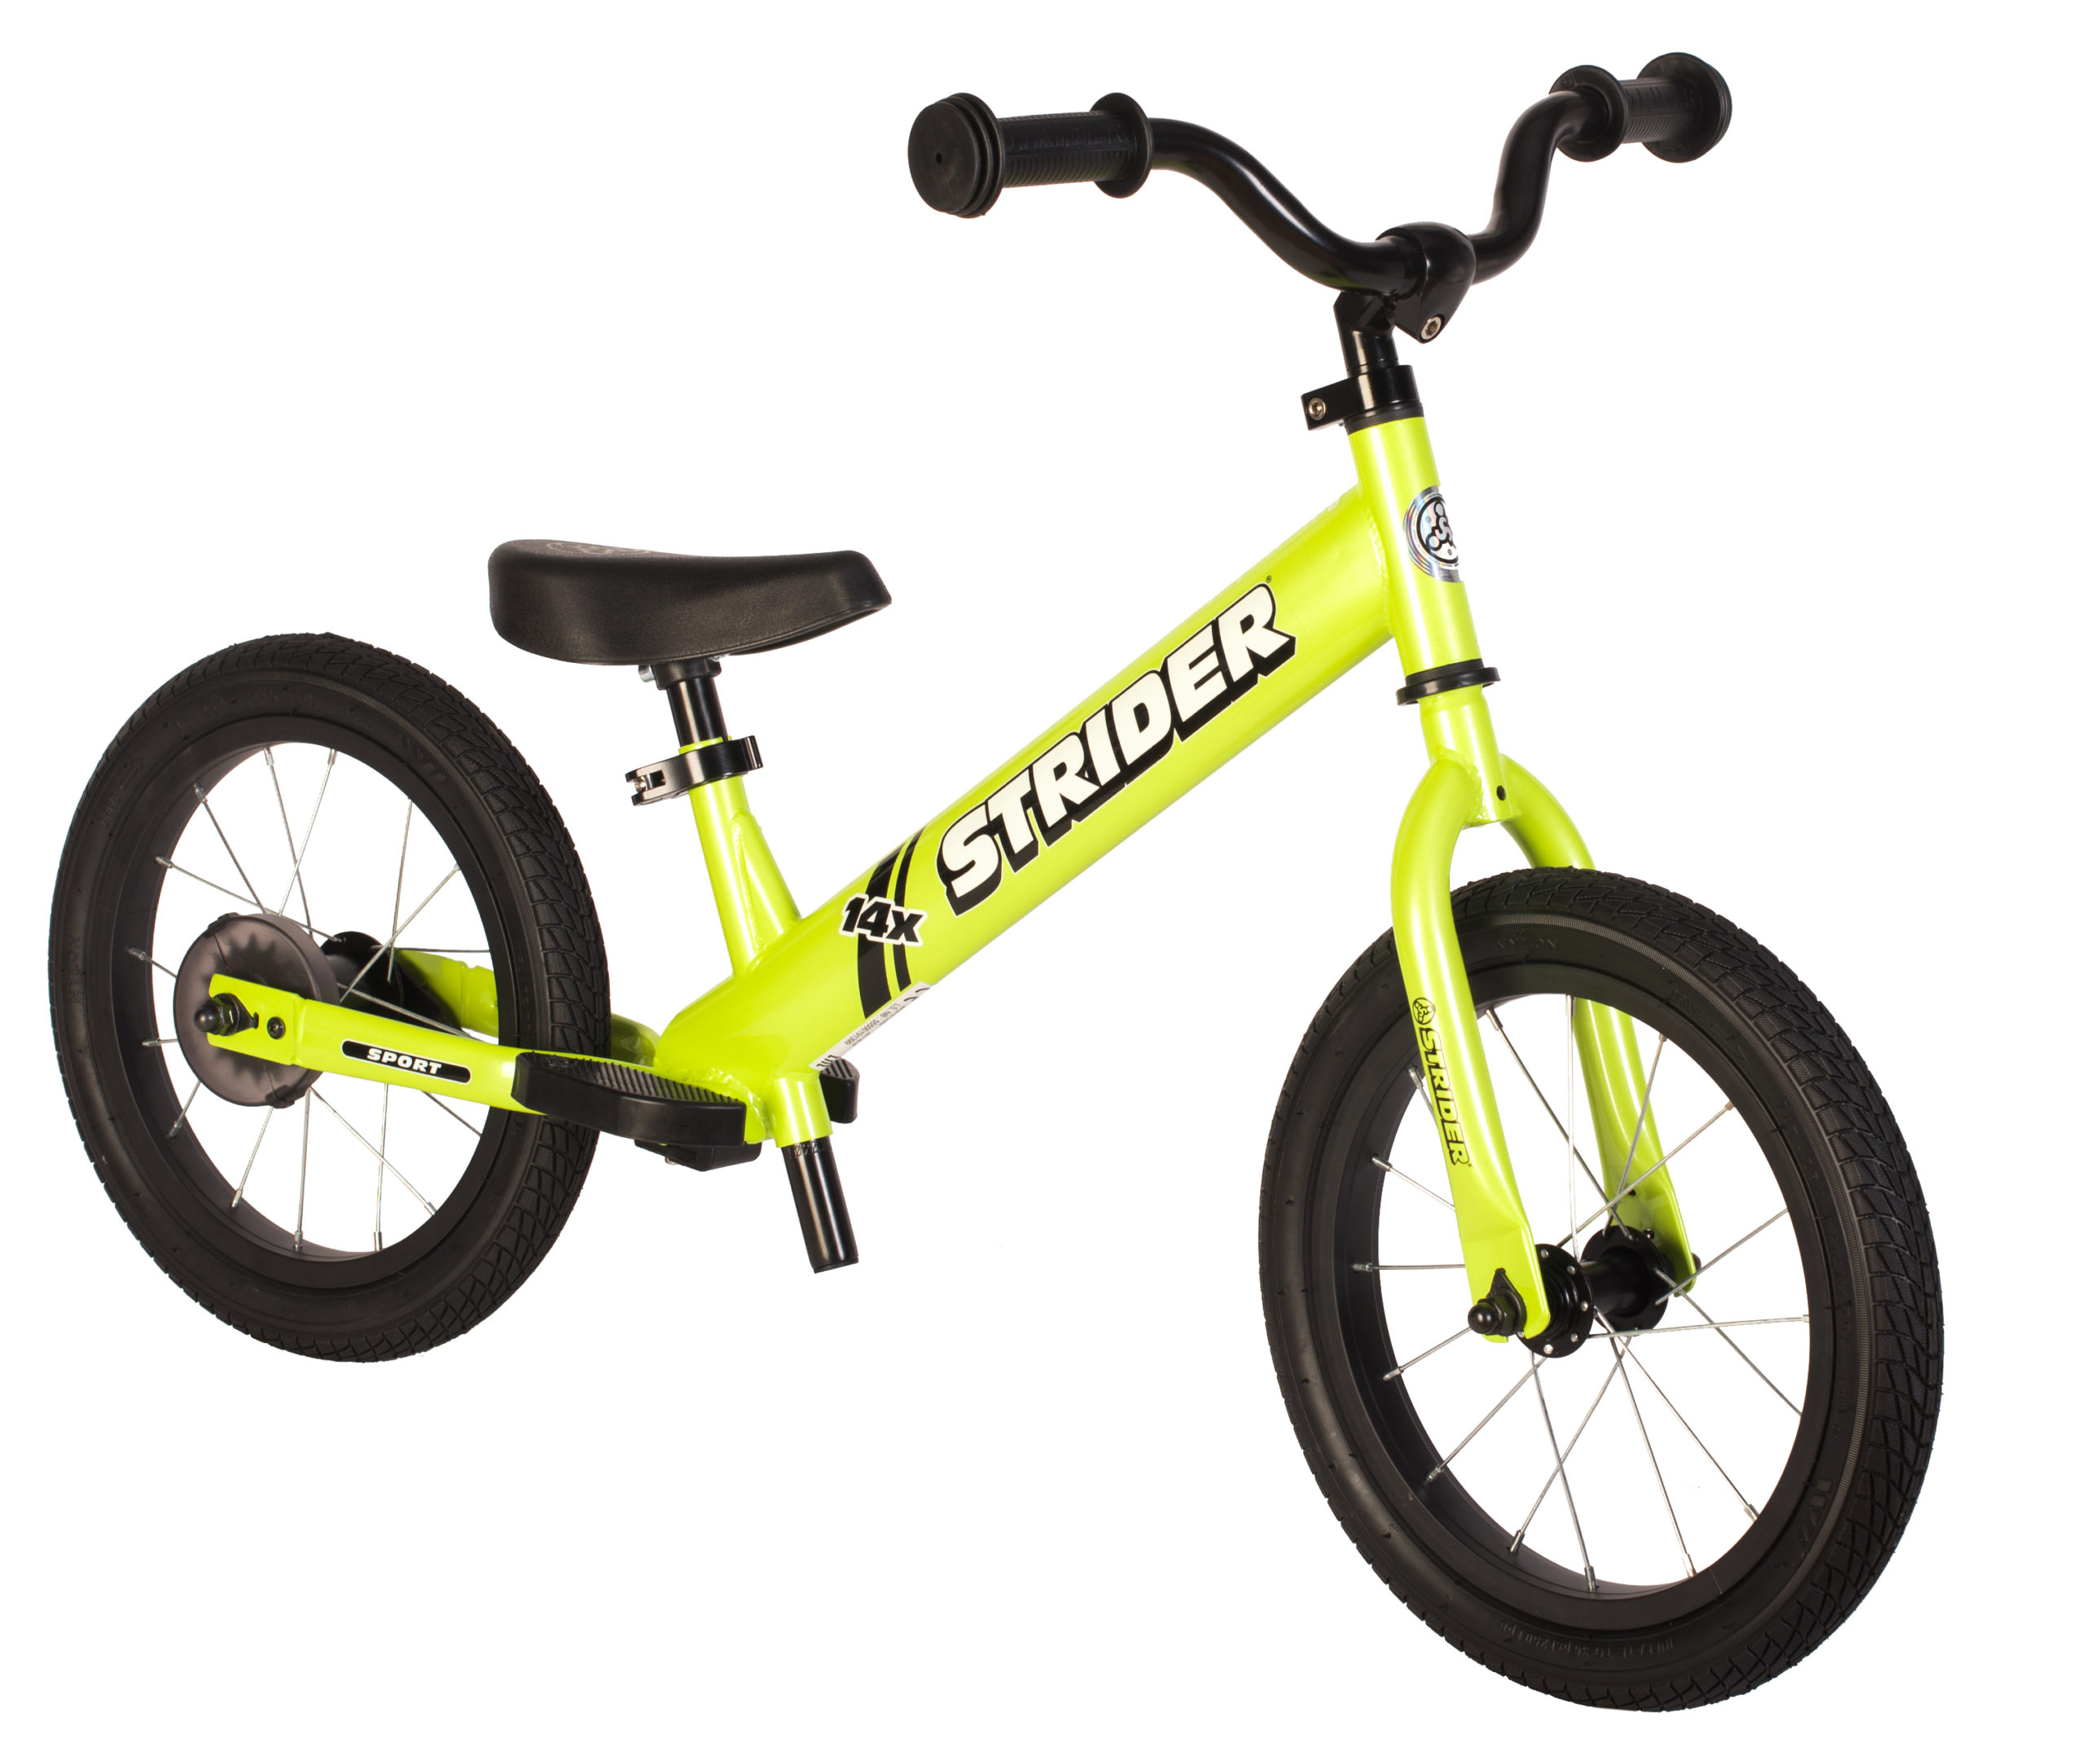 Studio image of green 14x Sport balance bike - angled view